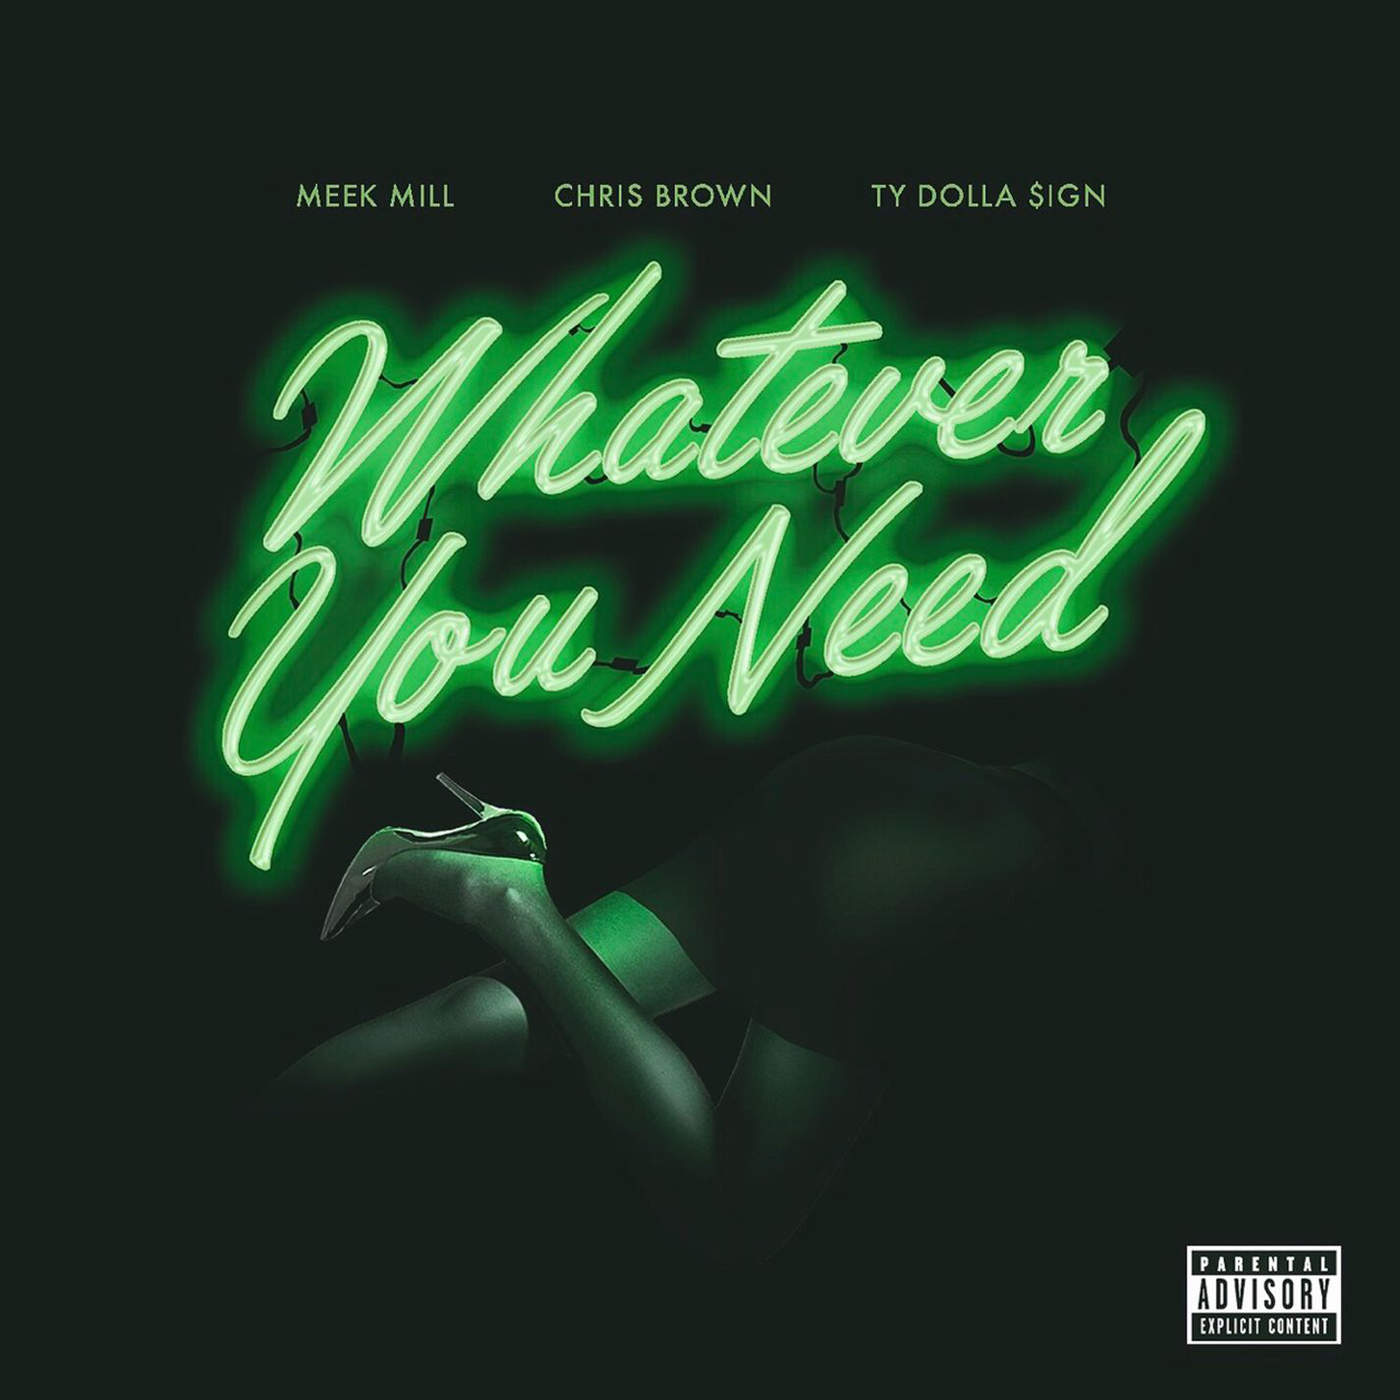 Meek Mill - Whatever You Need (feat. Chris Brown & Ty Dolla $ign) - Single Cover